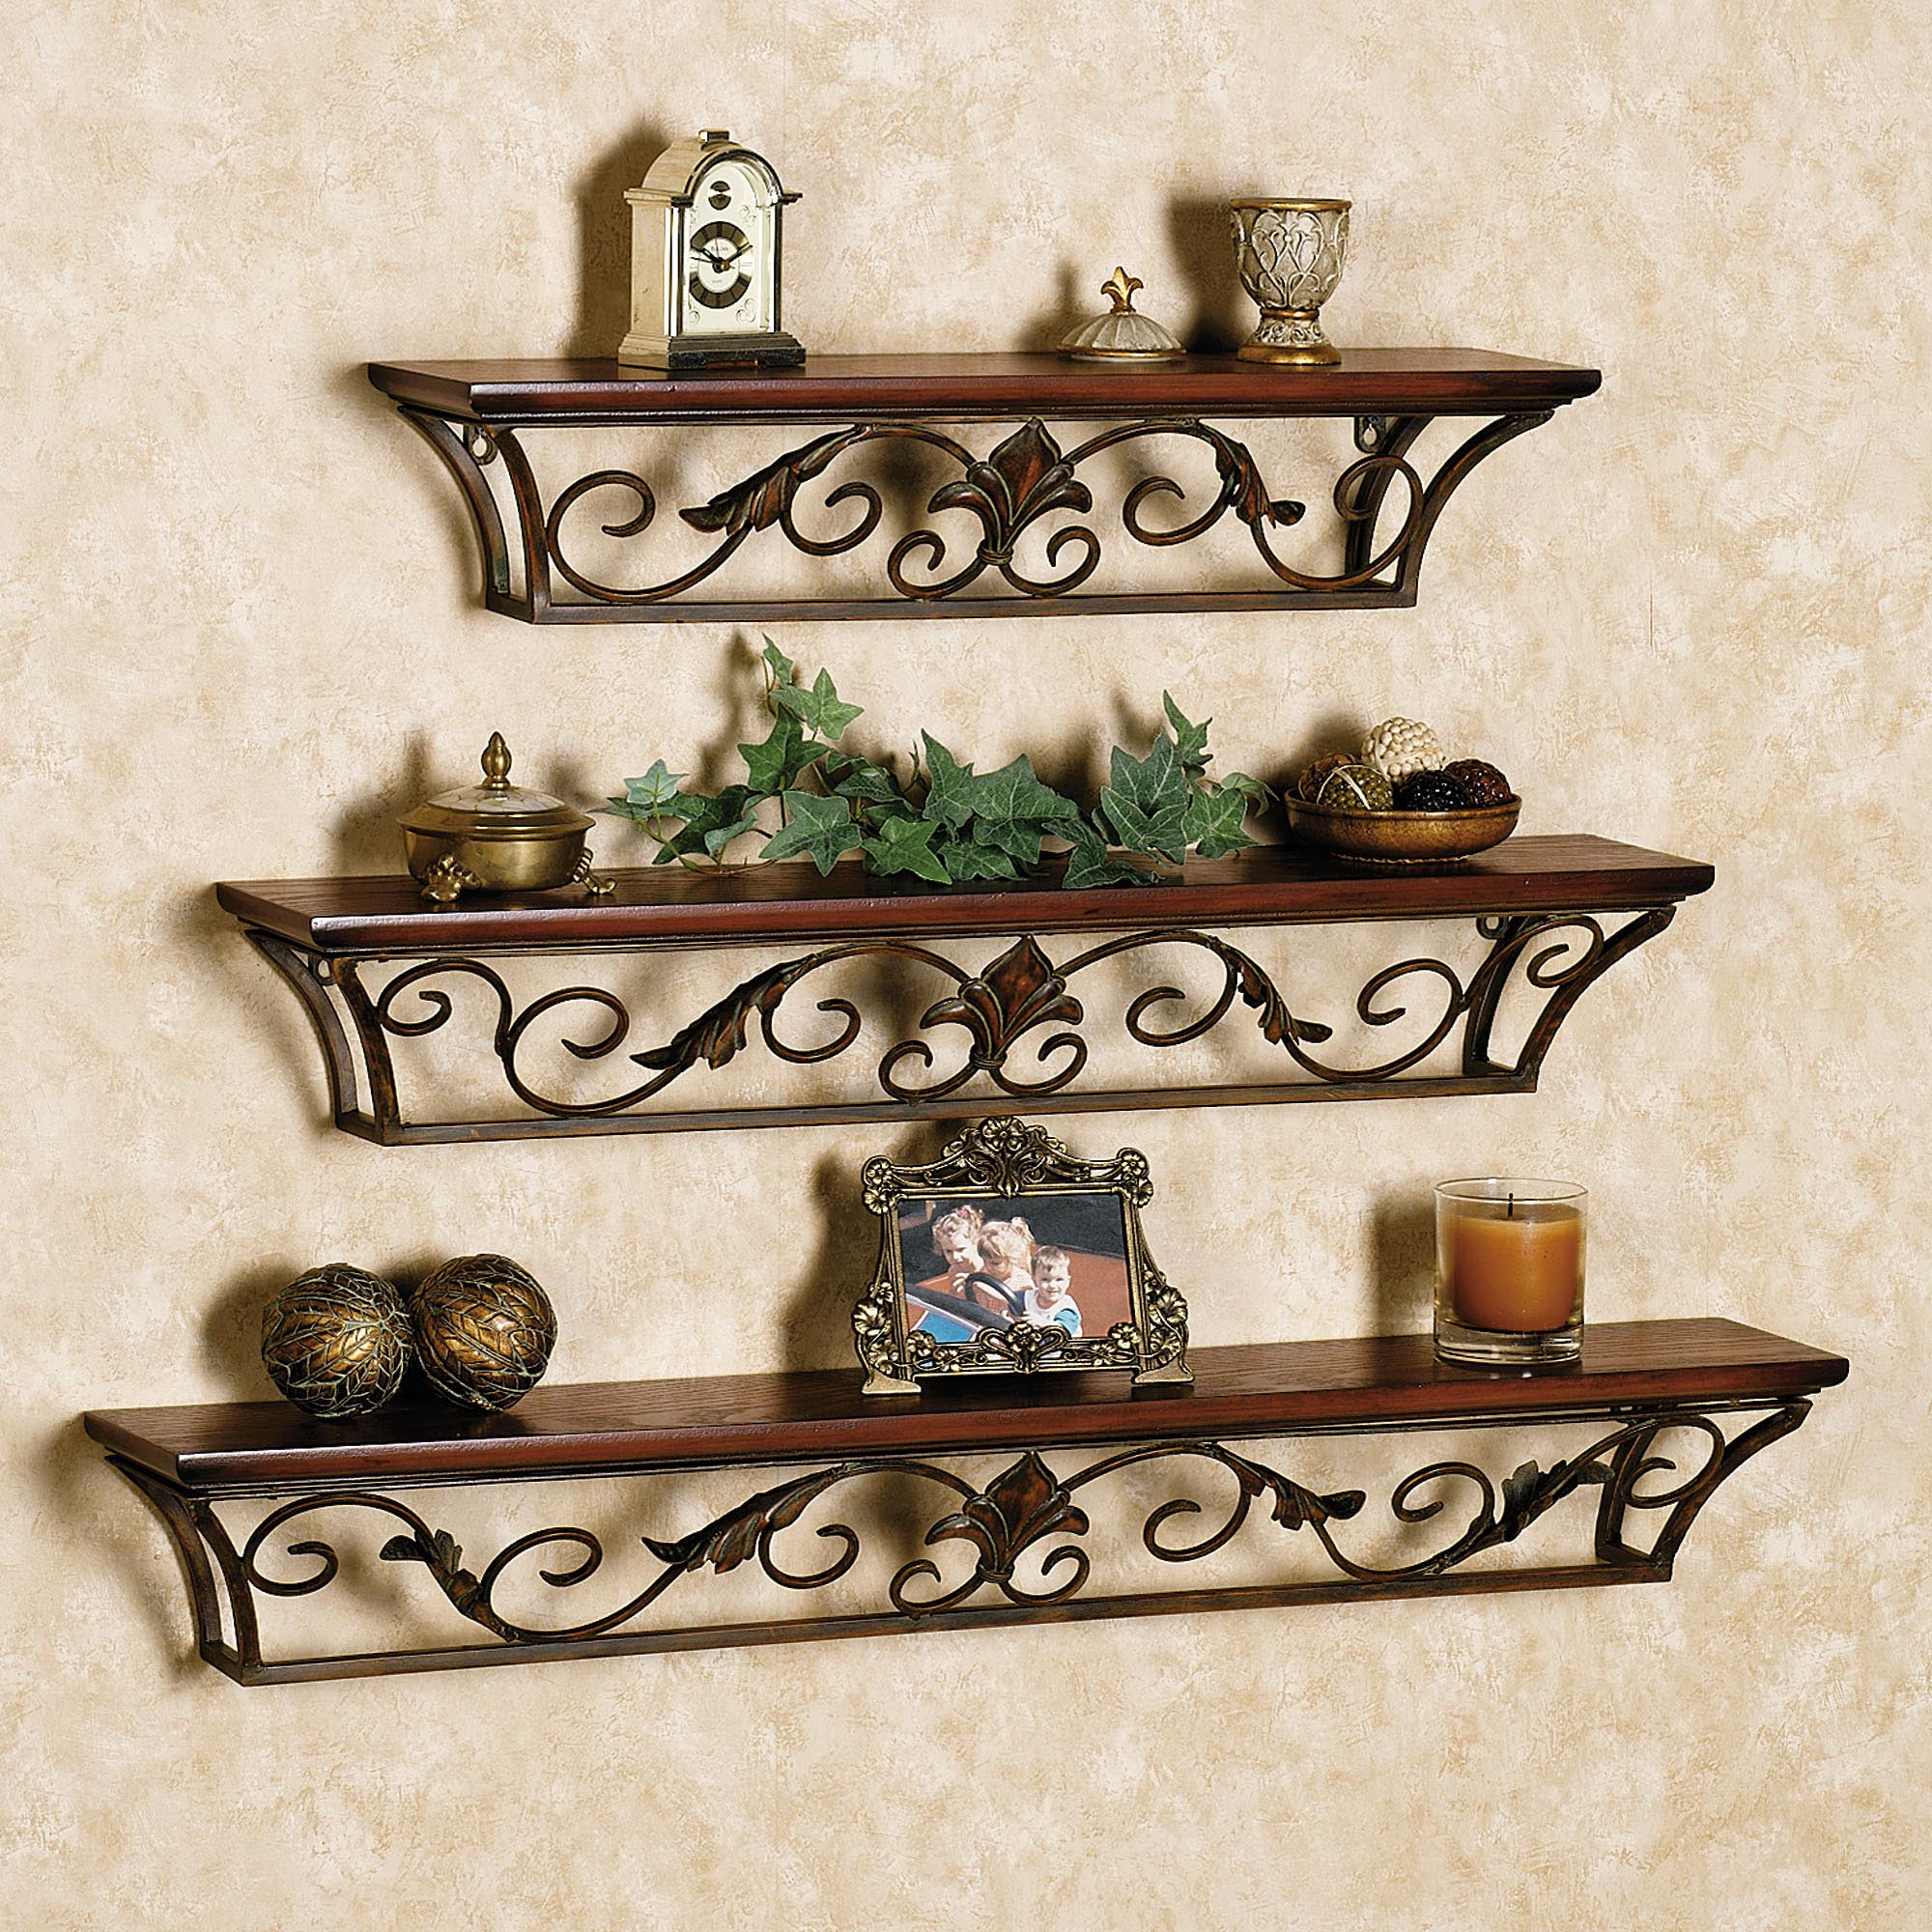 Wall Book Shelfs Small Decorative Wall Shelves Best Decor Things